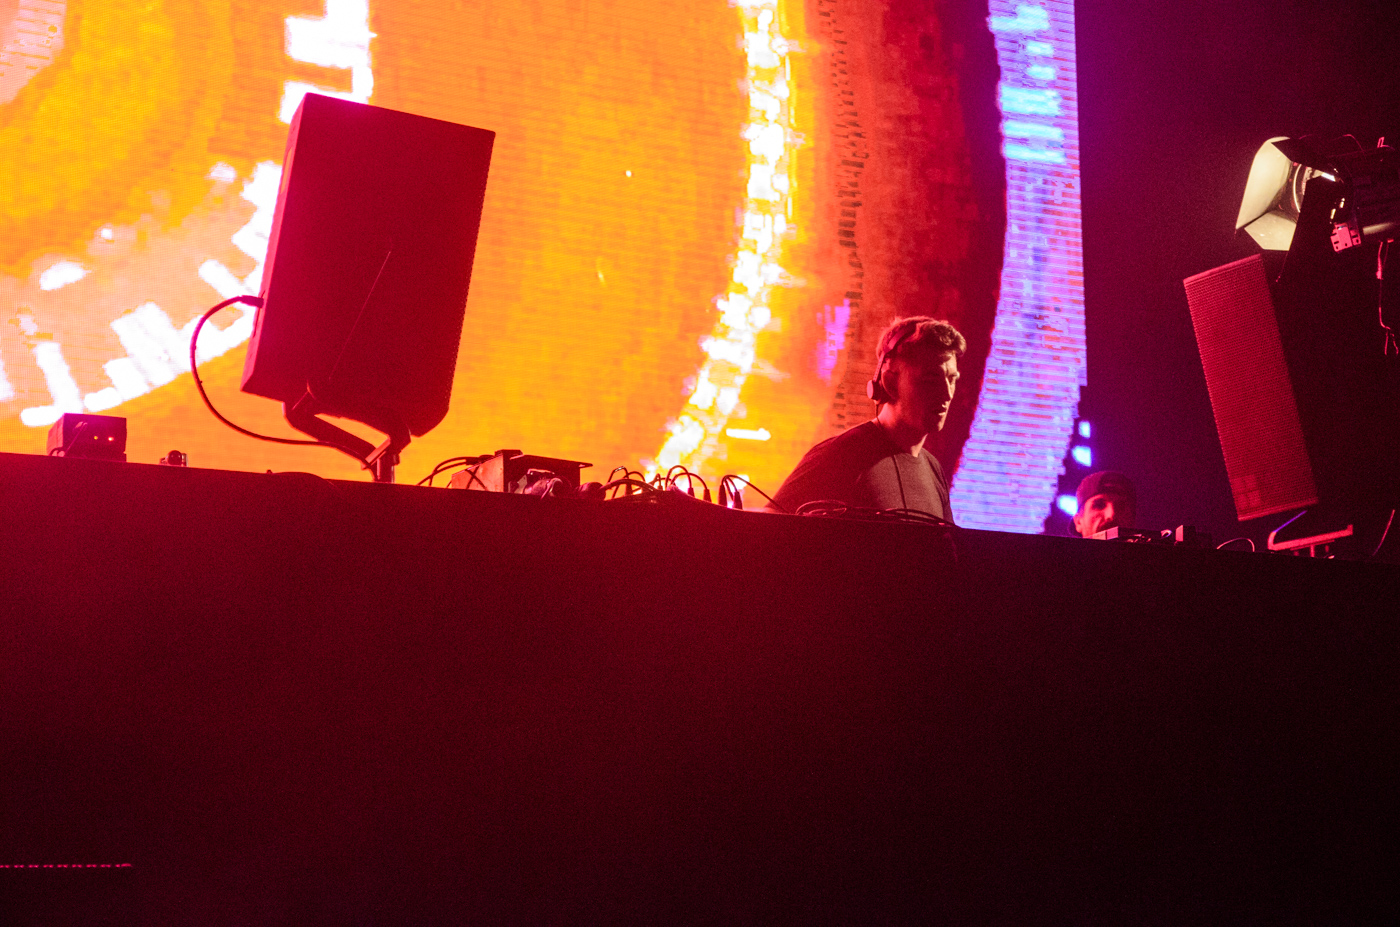 winterparty-at-3arena-dublin-30-10-2016-by-sean-smyth-15-of-53